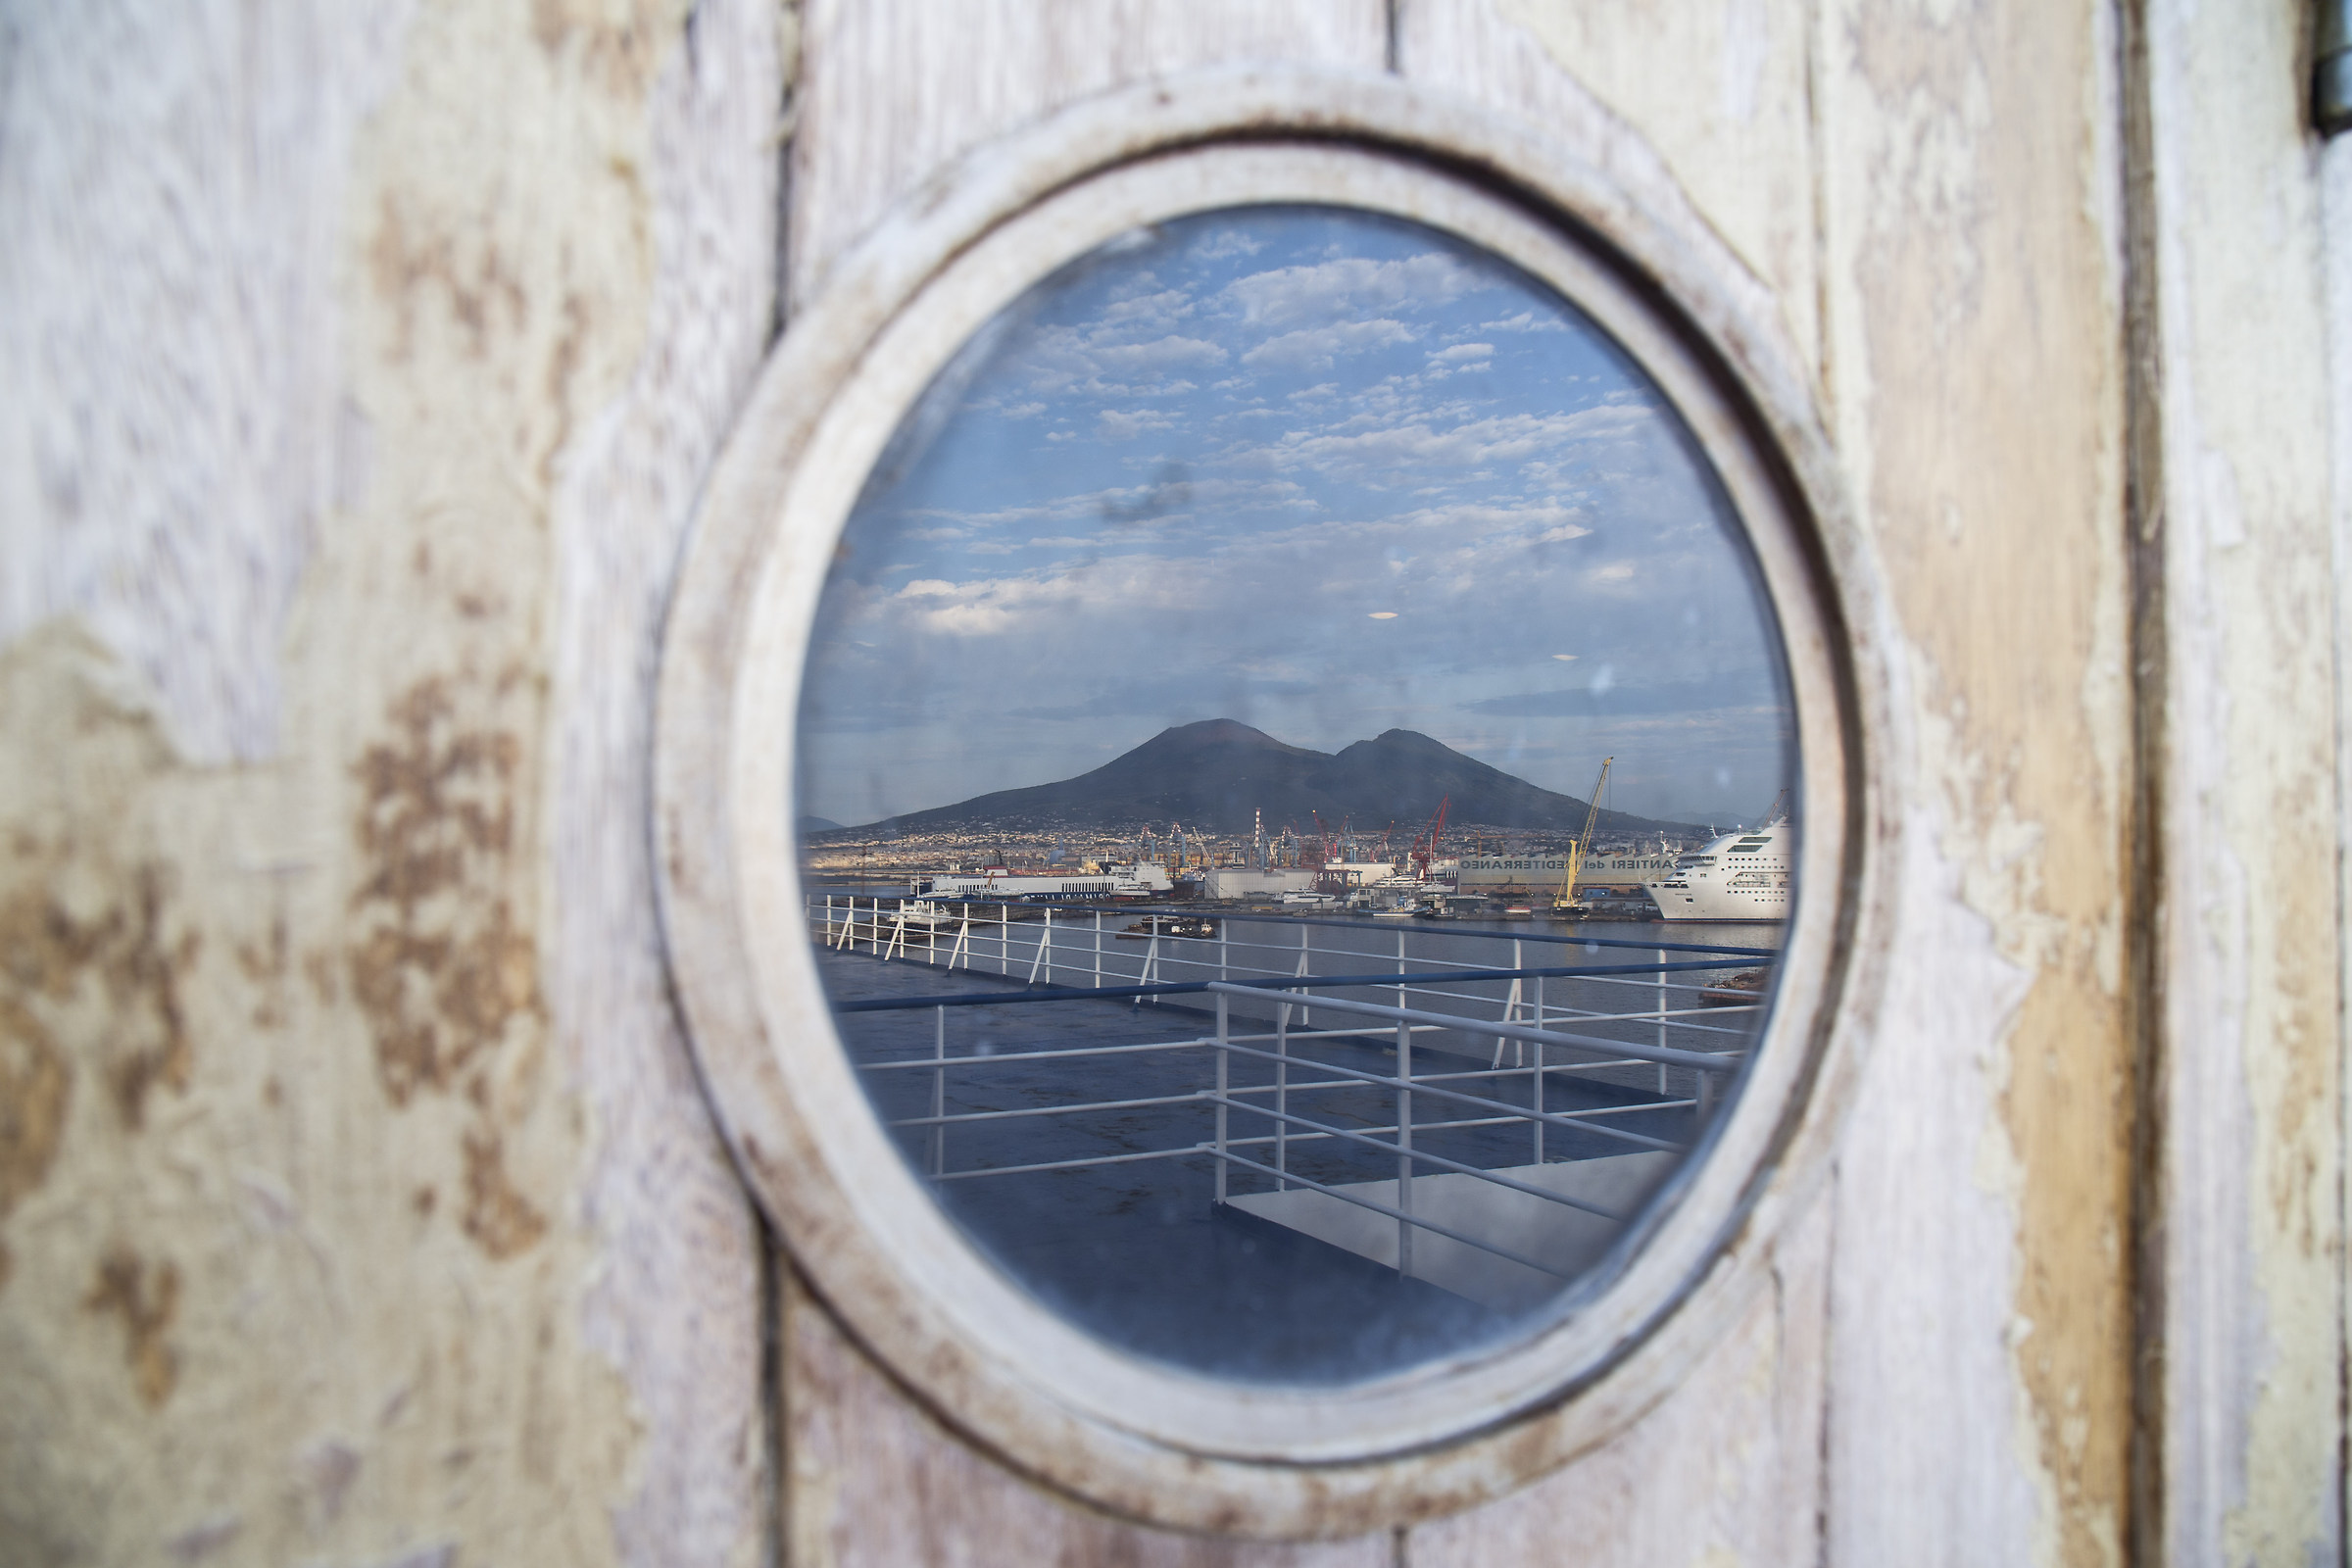 Naples from a porthole...